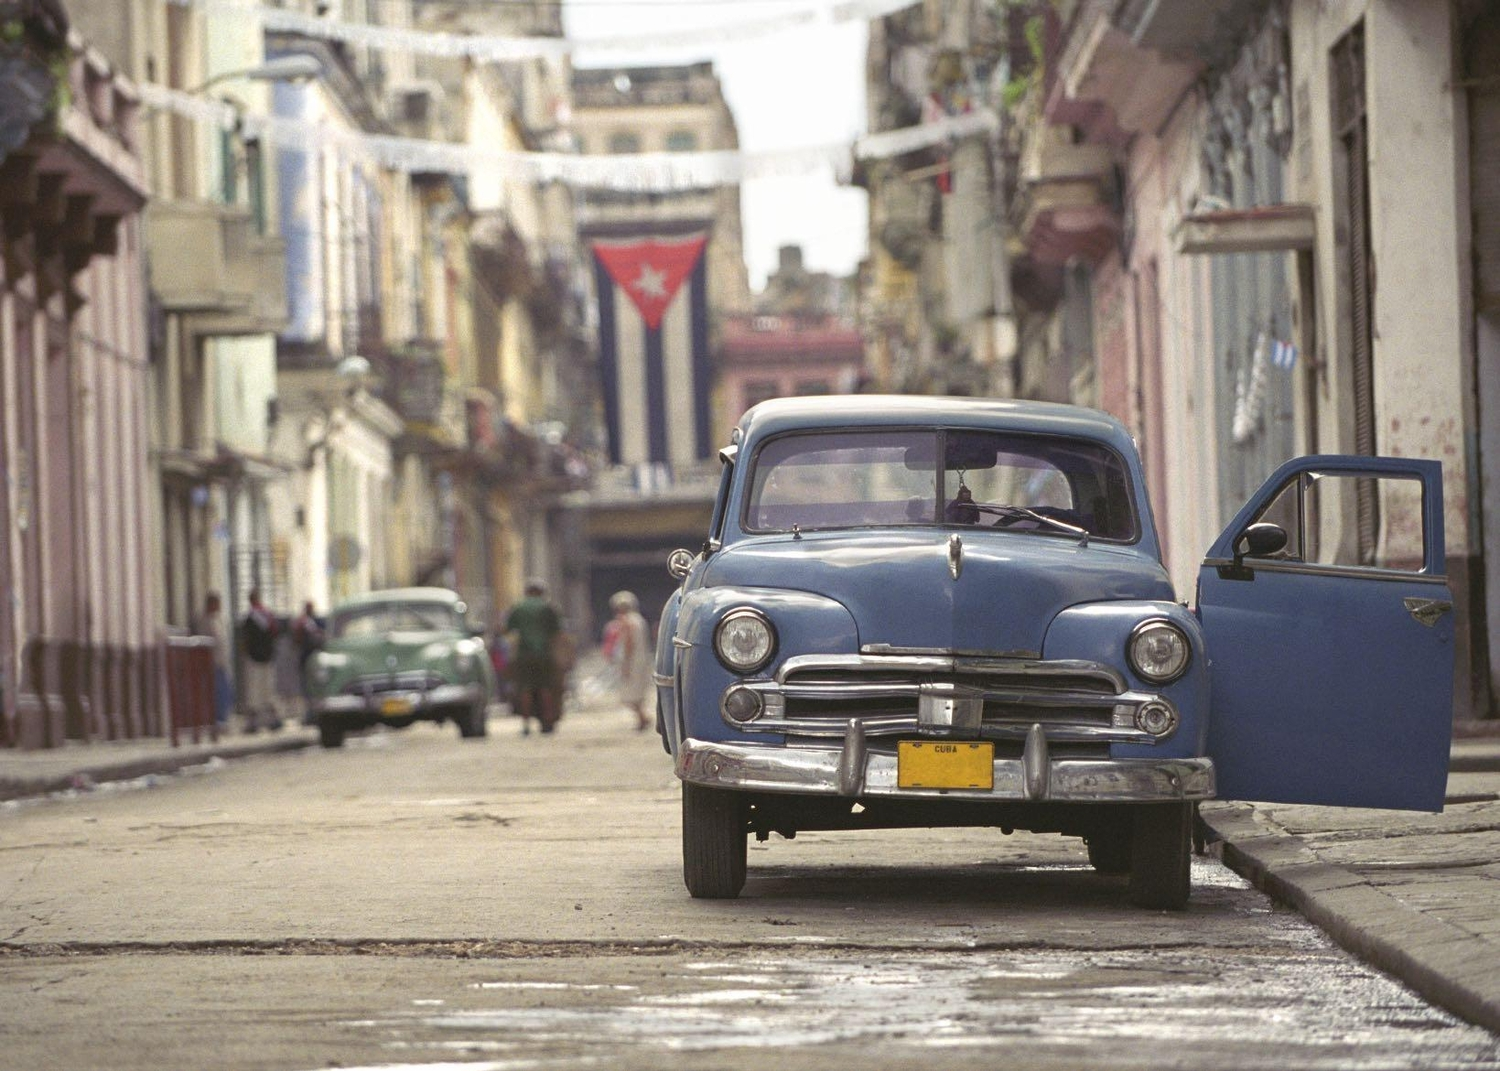 An old blue car parked on an empty street in havana with the cuban flag hanging